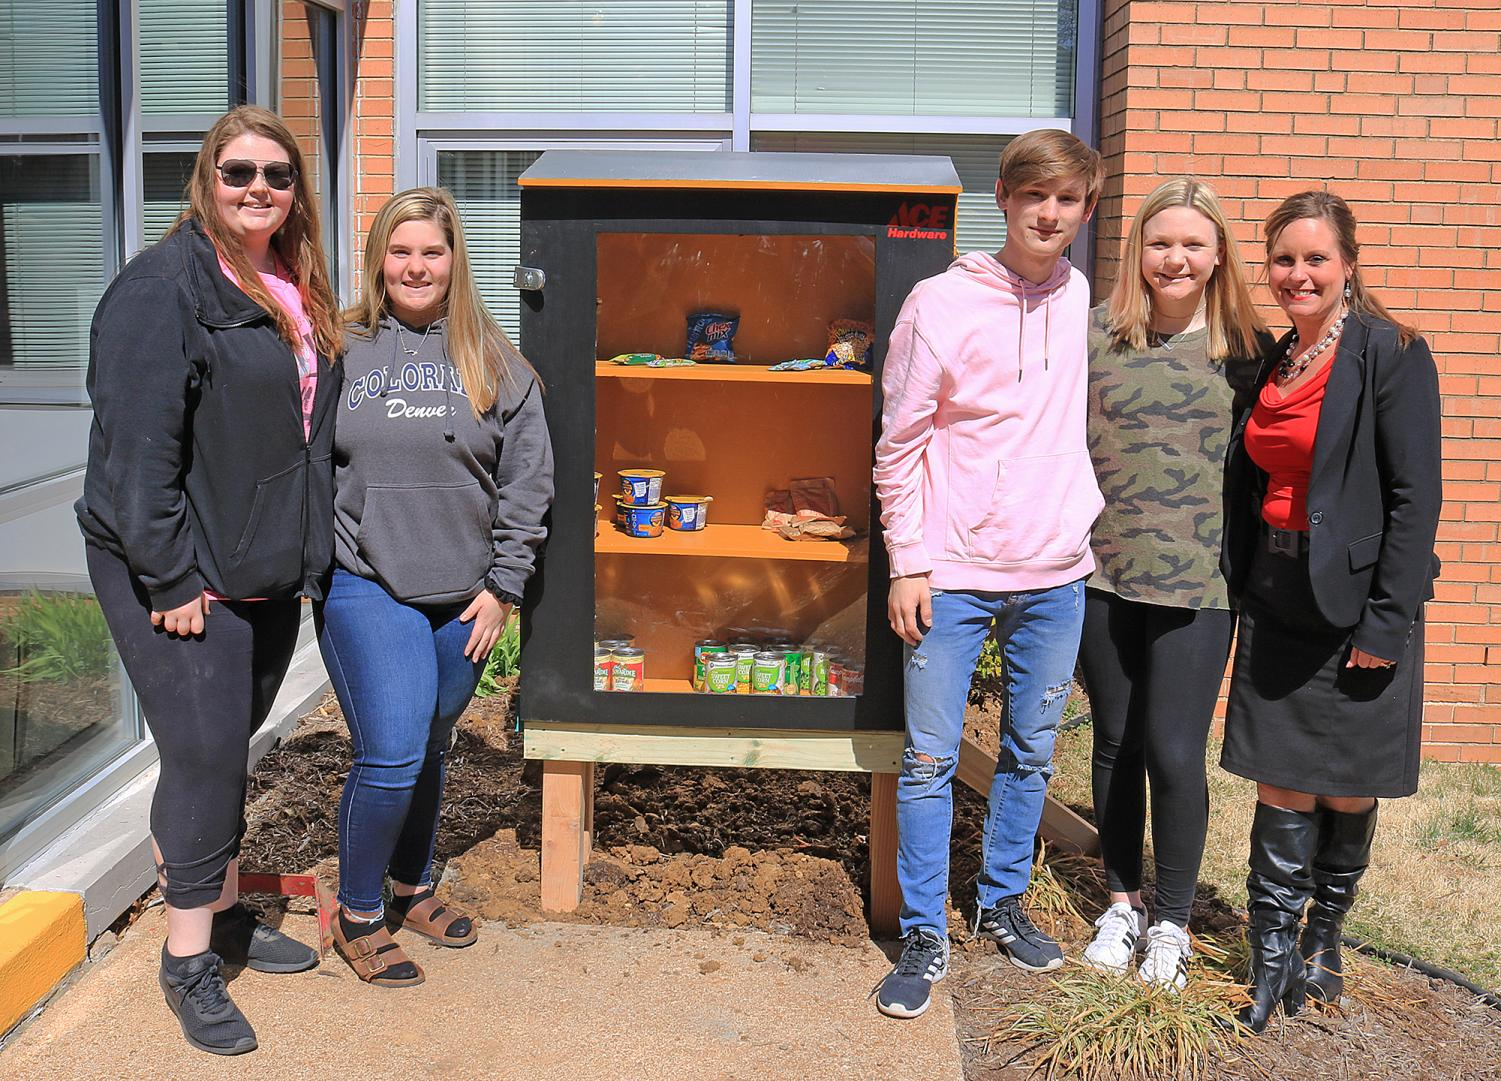 FCCLA students standing next to the new food locker at Trautwein Elementary.